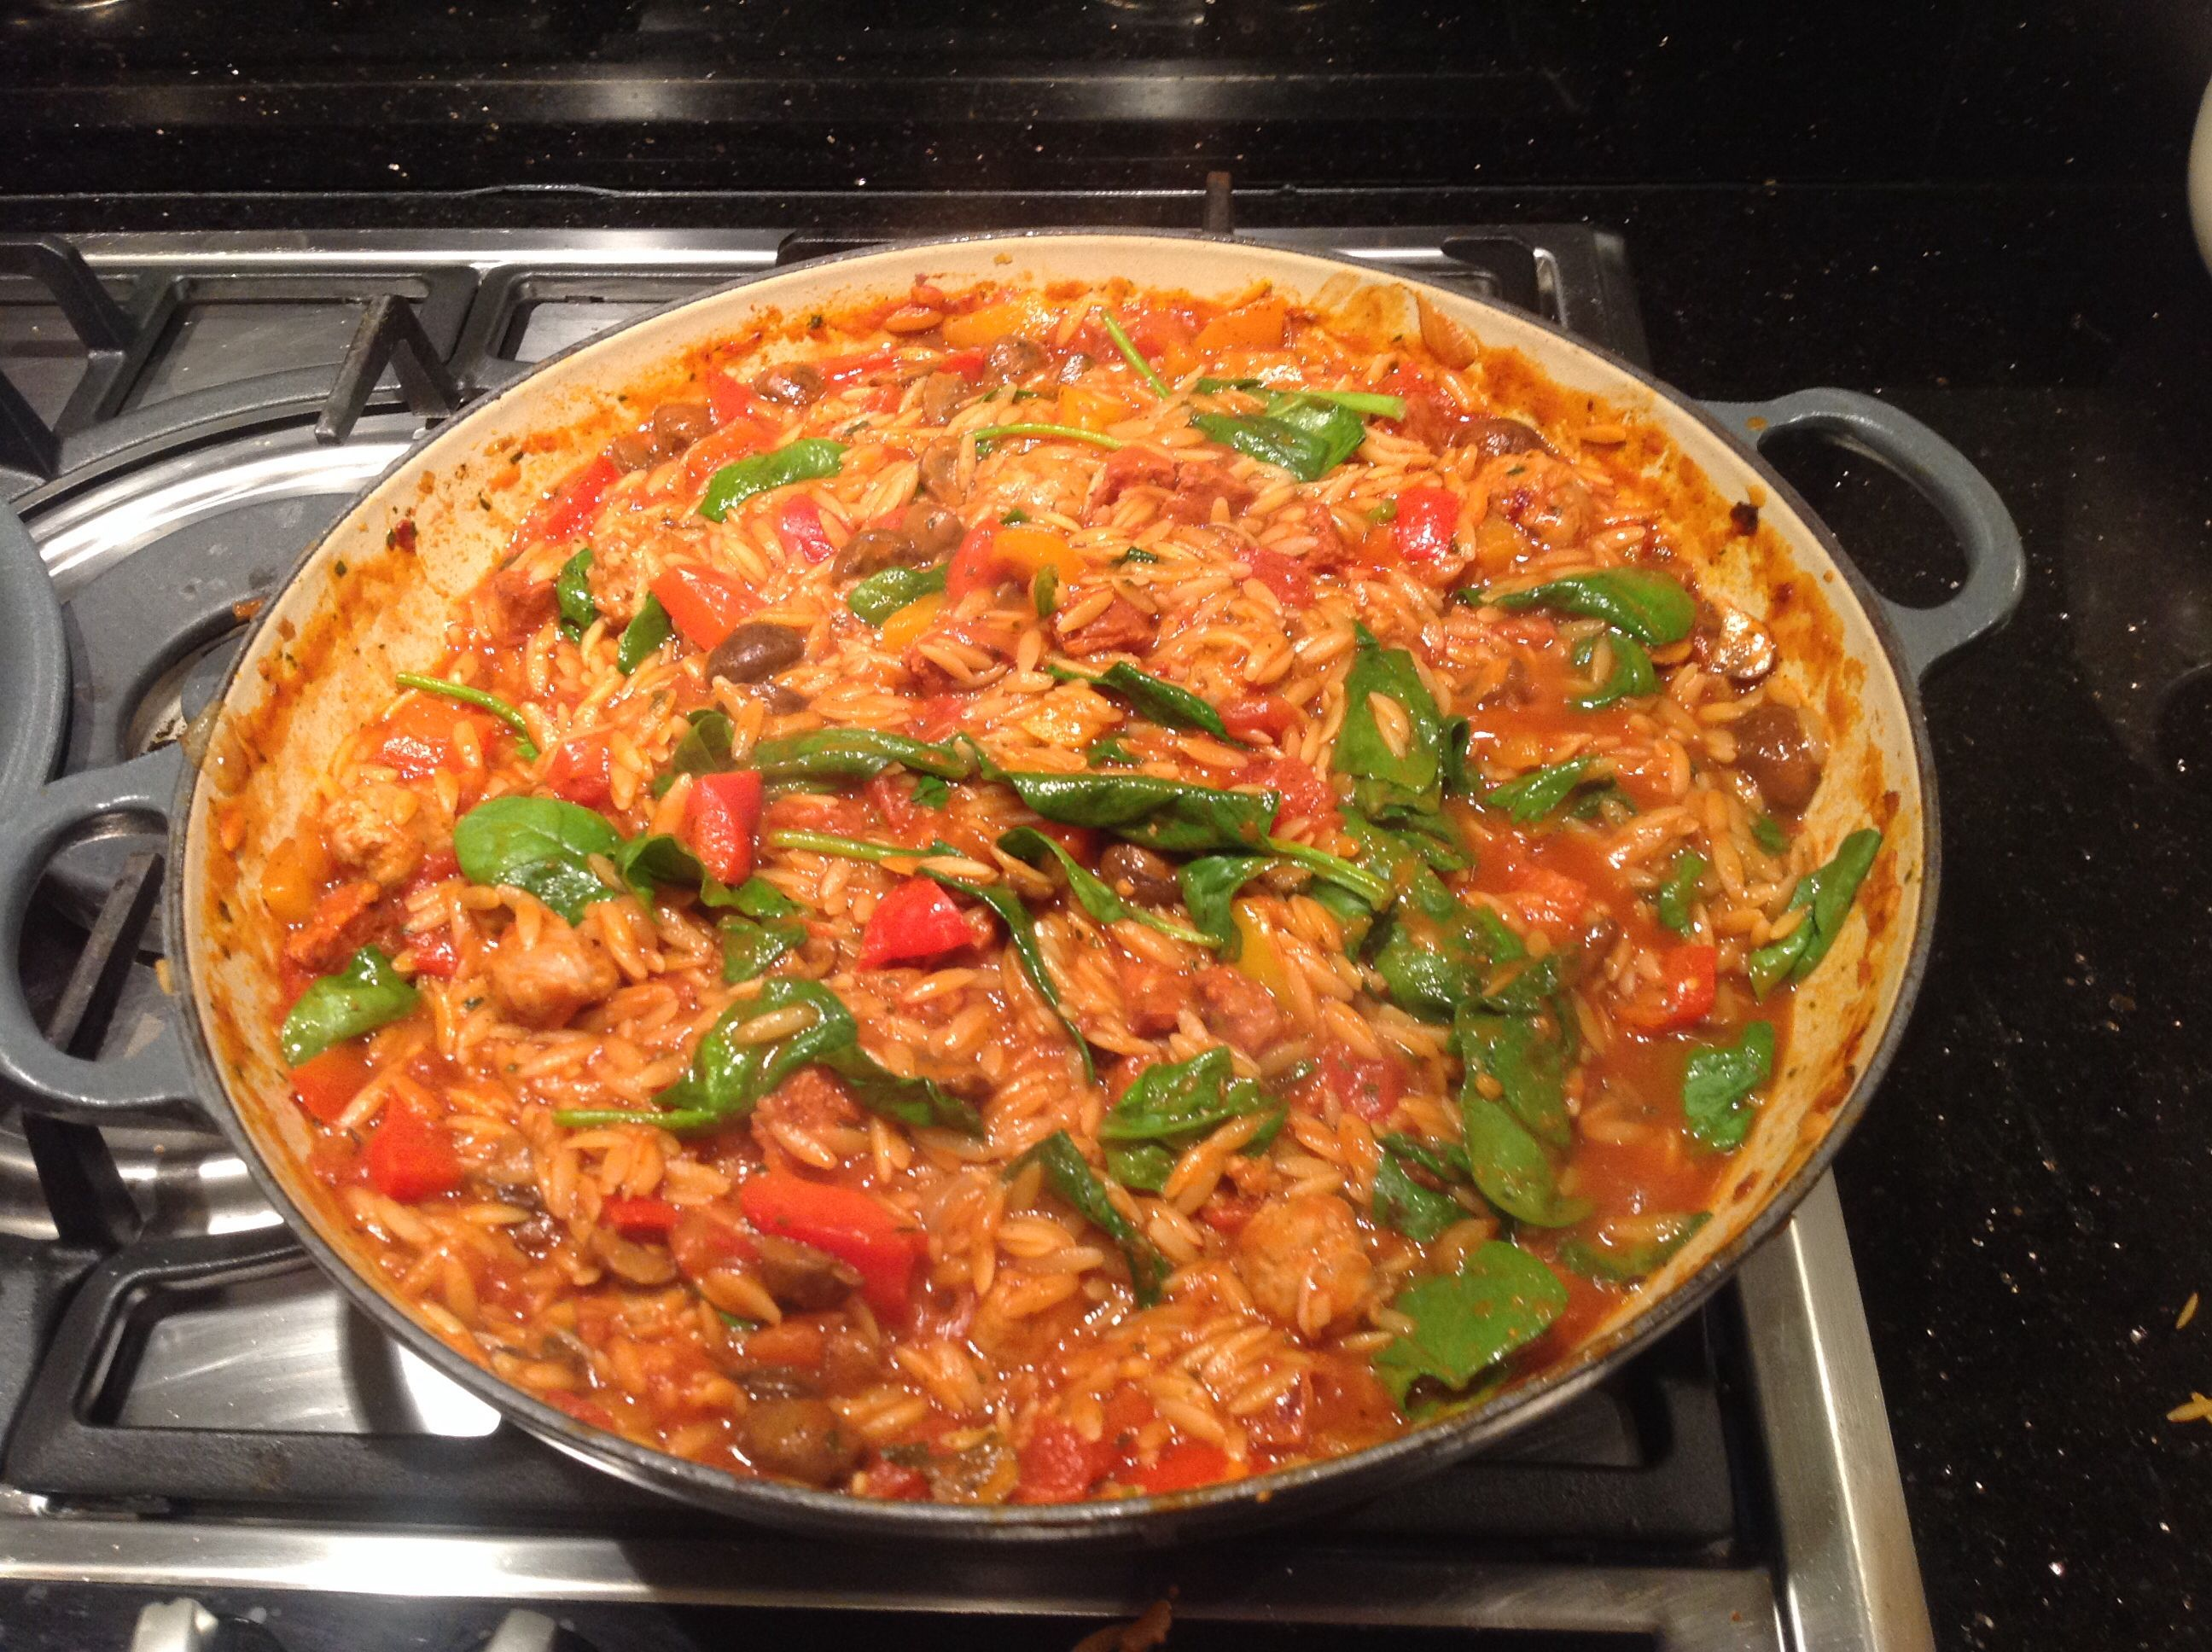 Ignore link. Orzo with chorizo, garlic, tin chopped toms, beef stock and olive oil. Baked on 180 for 45 - 1 hour. Amelia loved this.